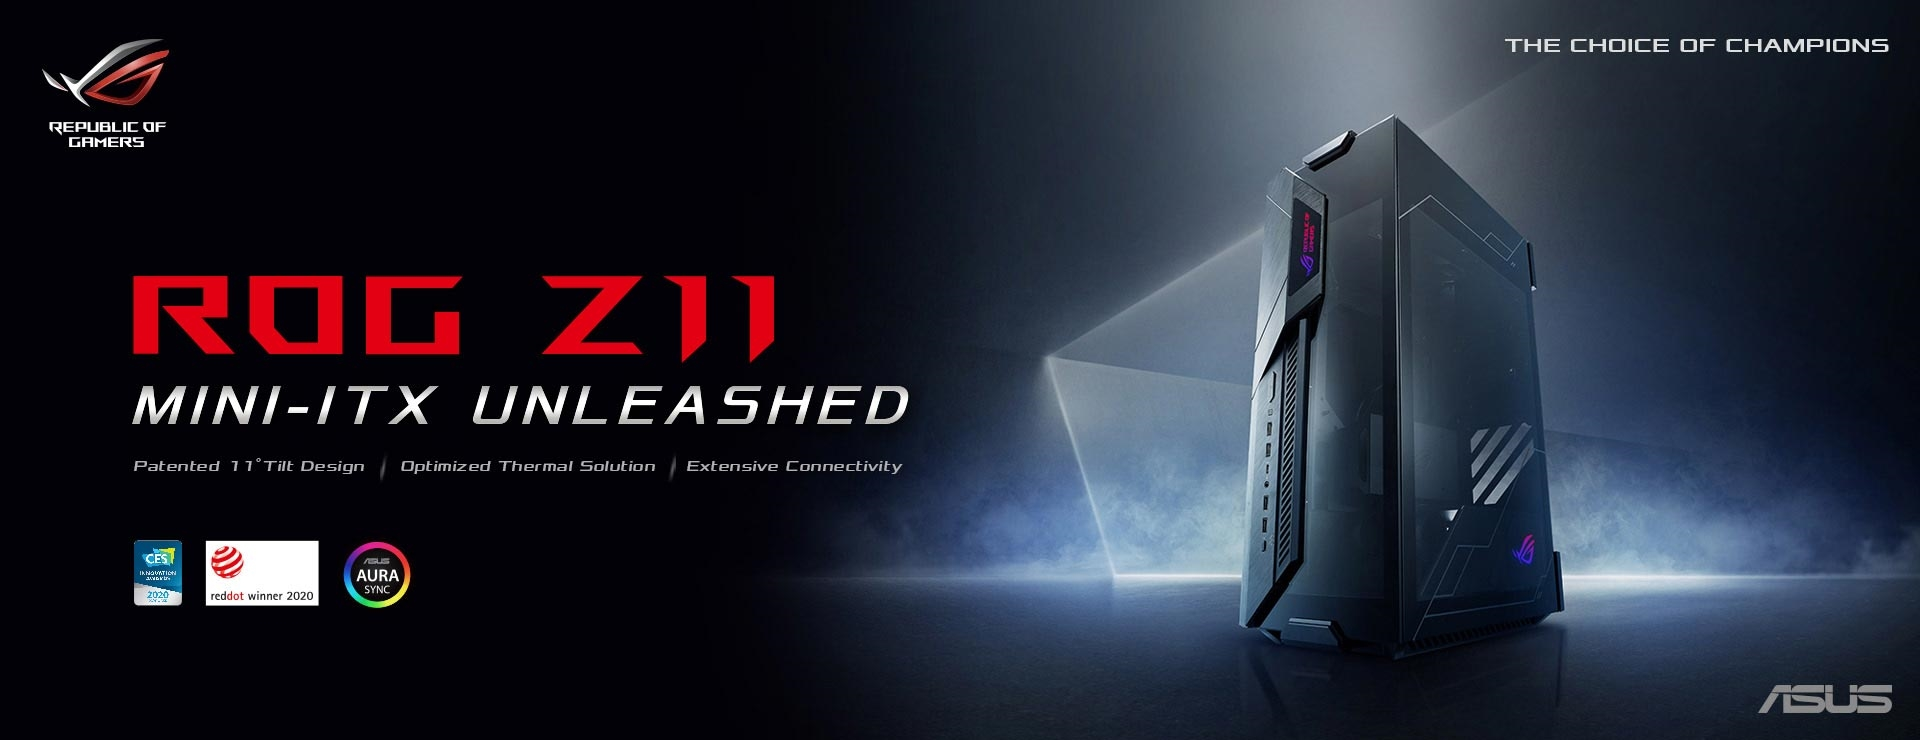 200909_ROG-SWIFT-360Hz-PG259QN